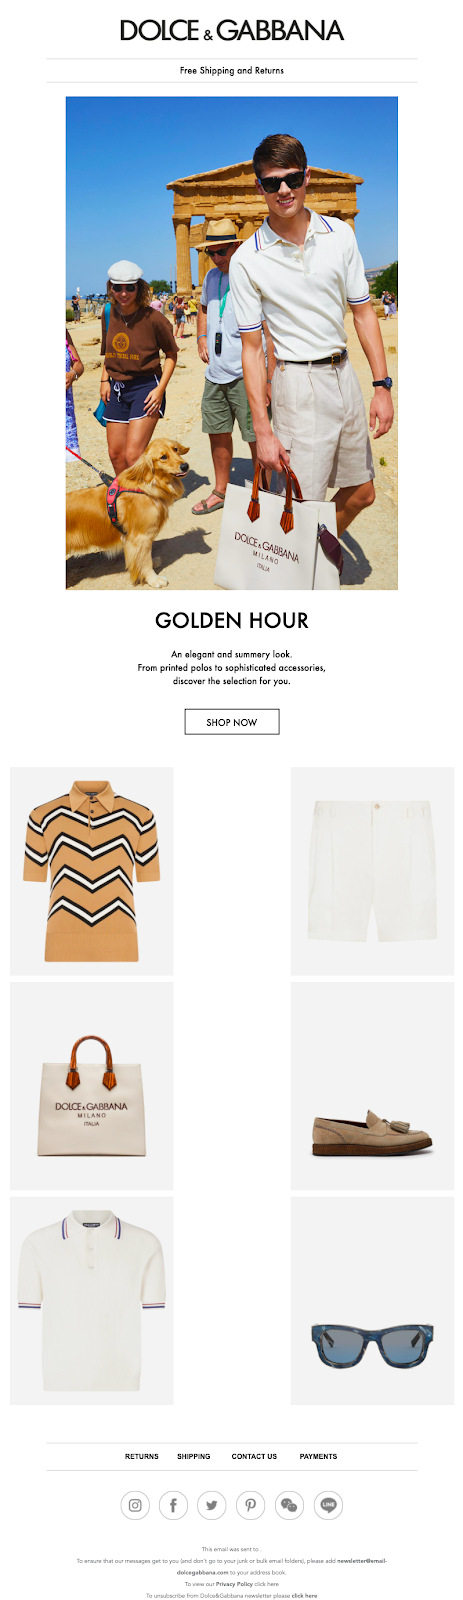 Fashion email marketing best practice: use charming visuals